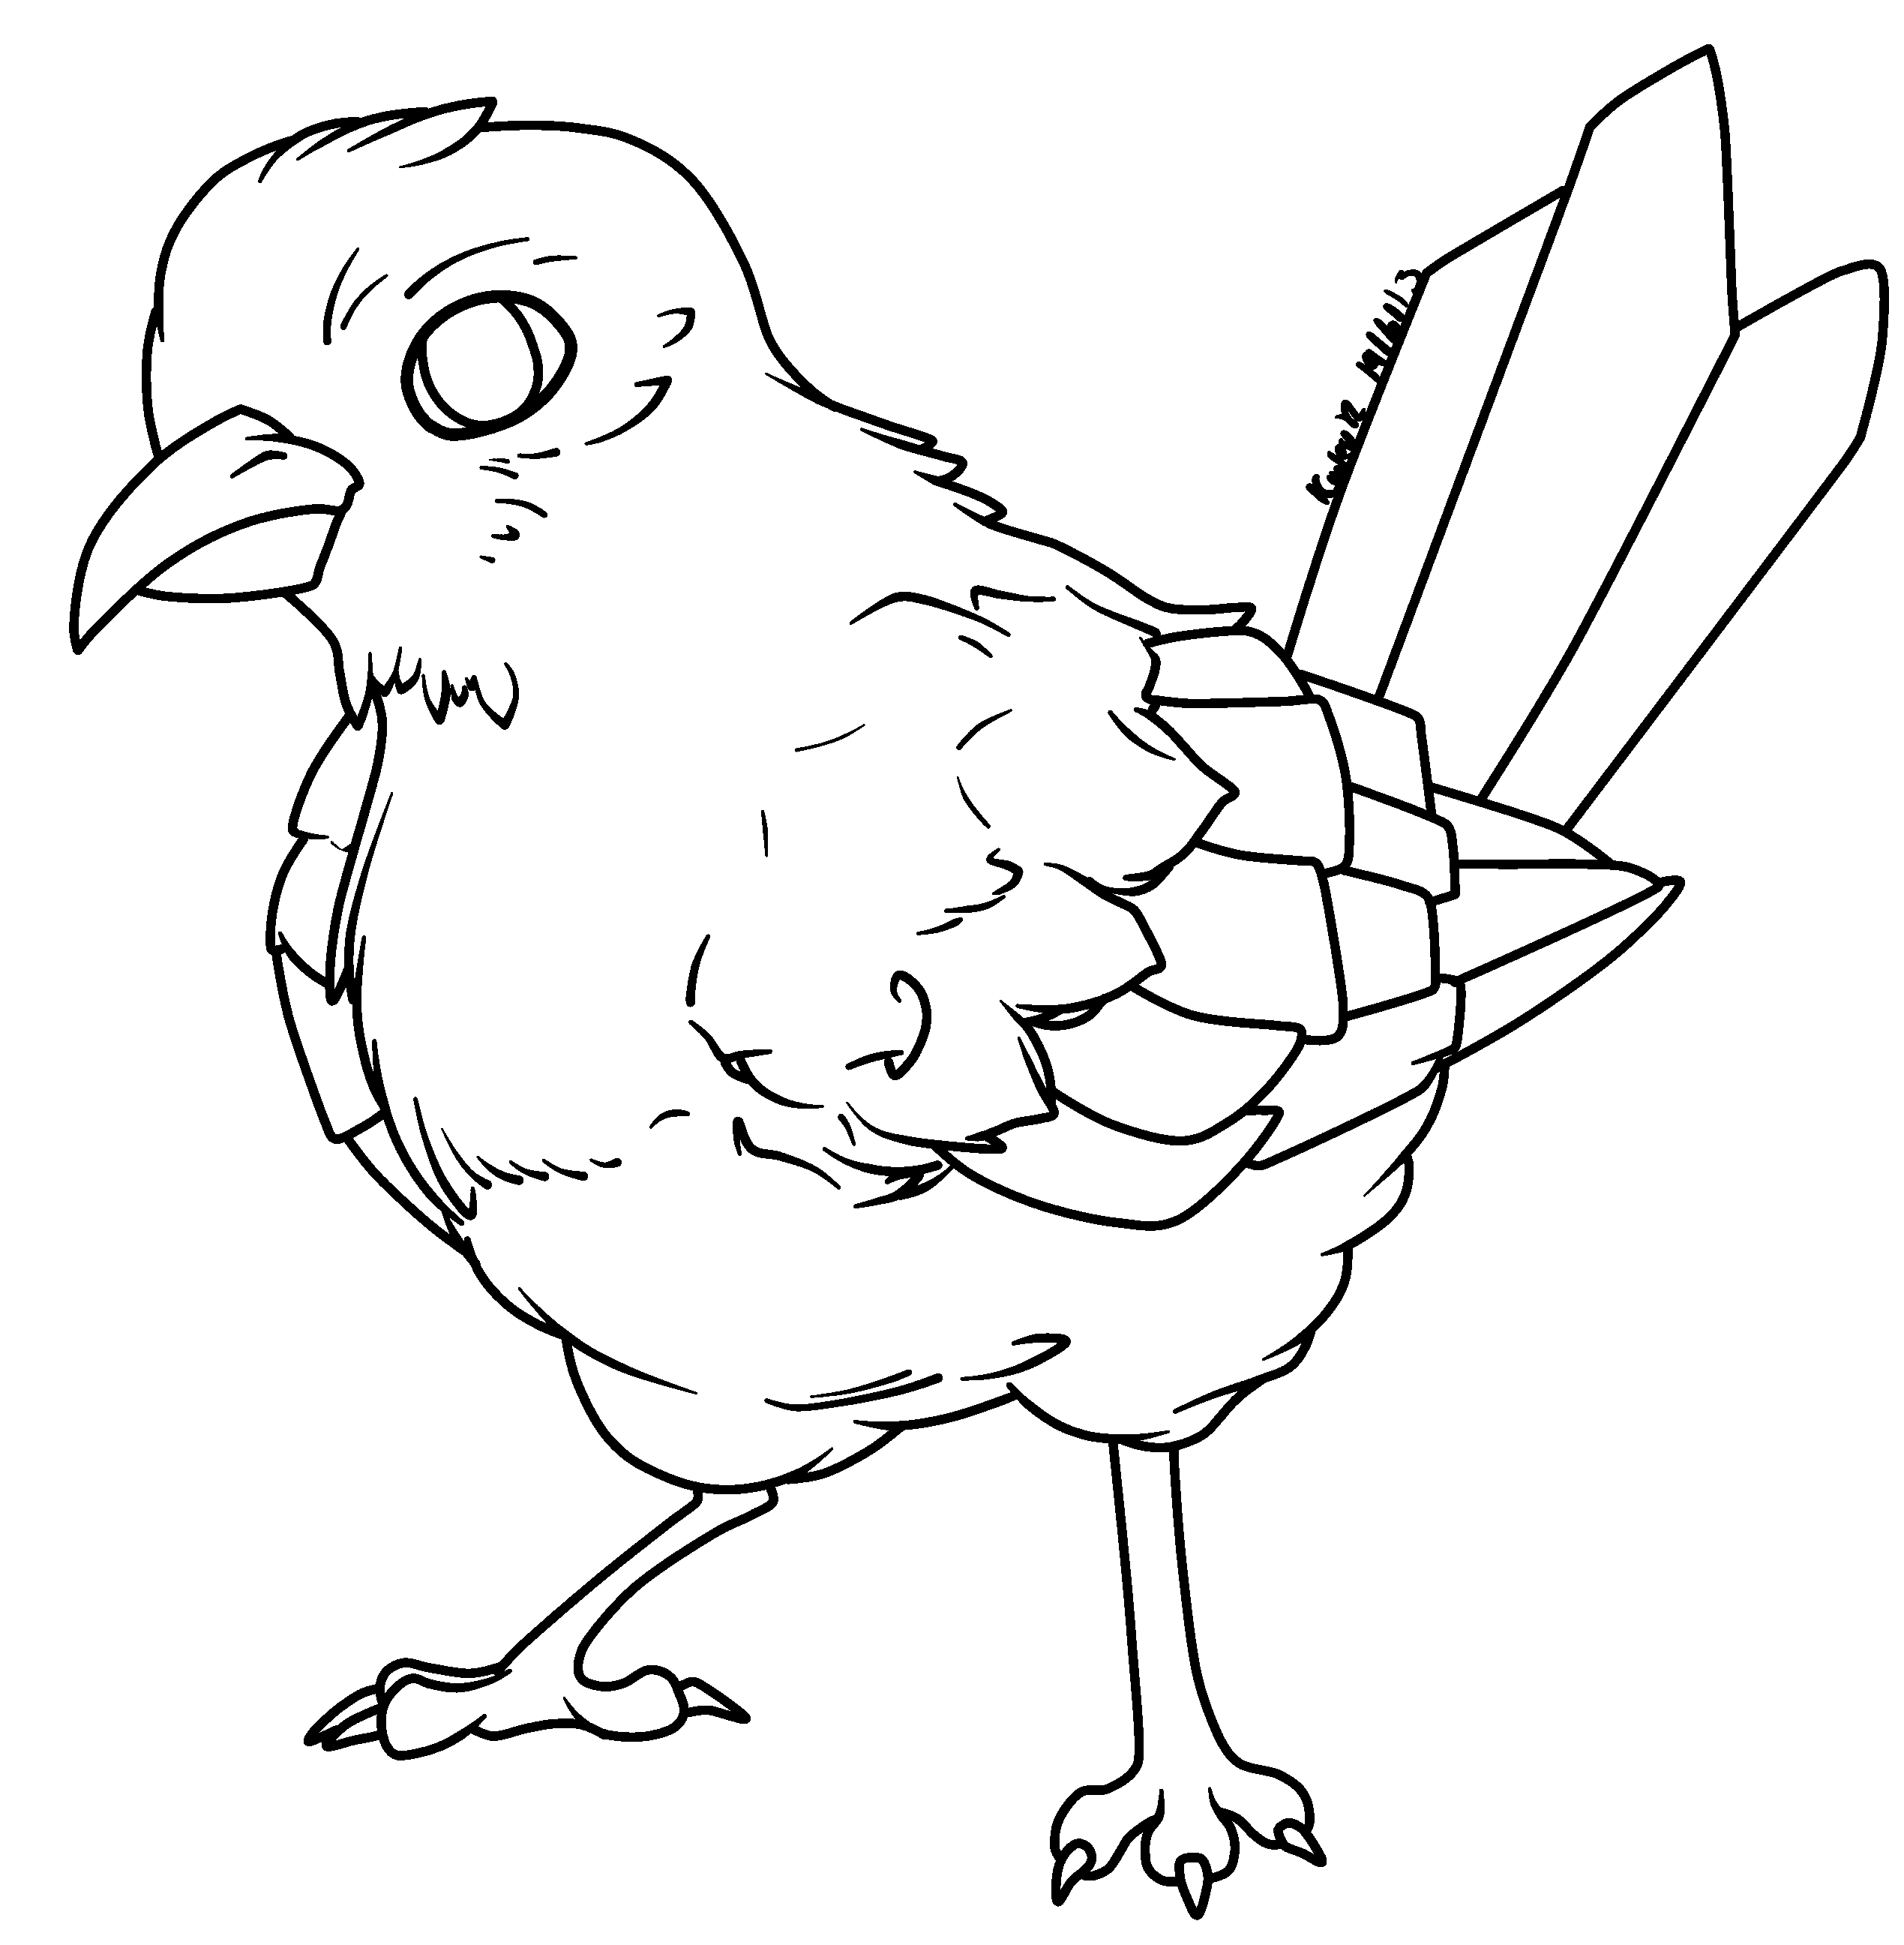 Line Art Animals : Rq bird lineart by abyssinchaos on deviantart